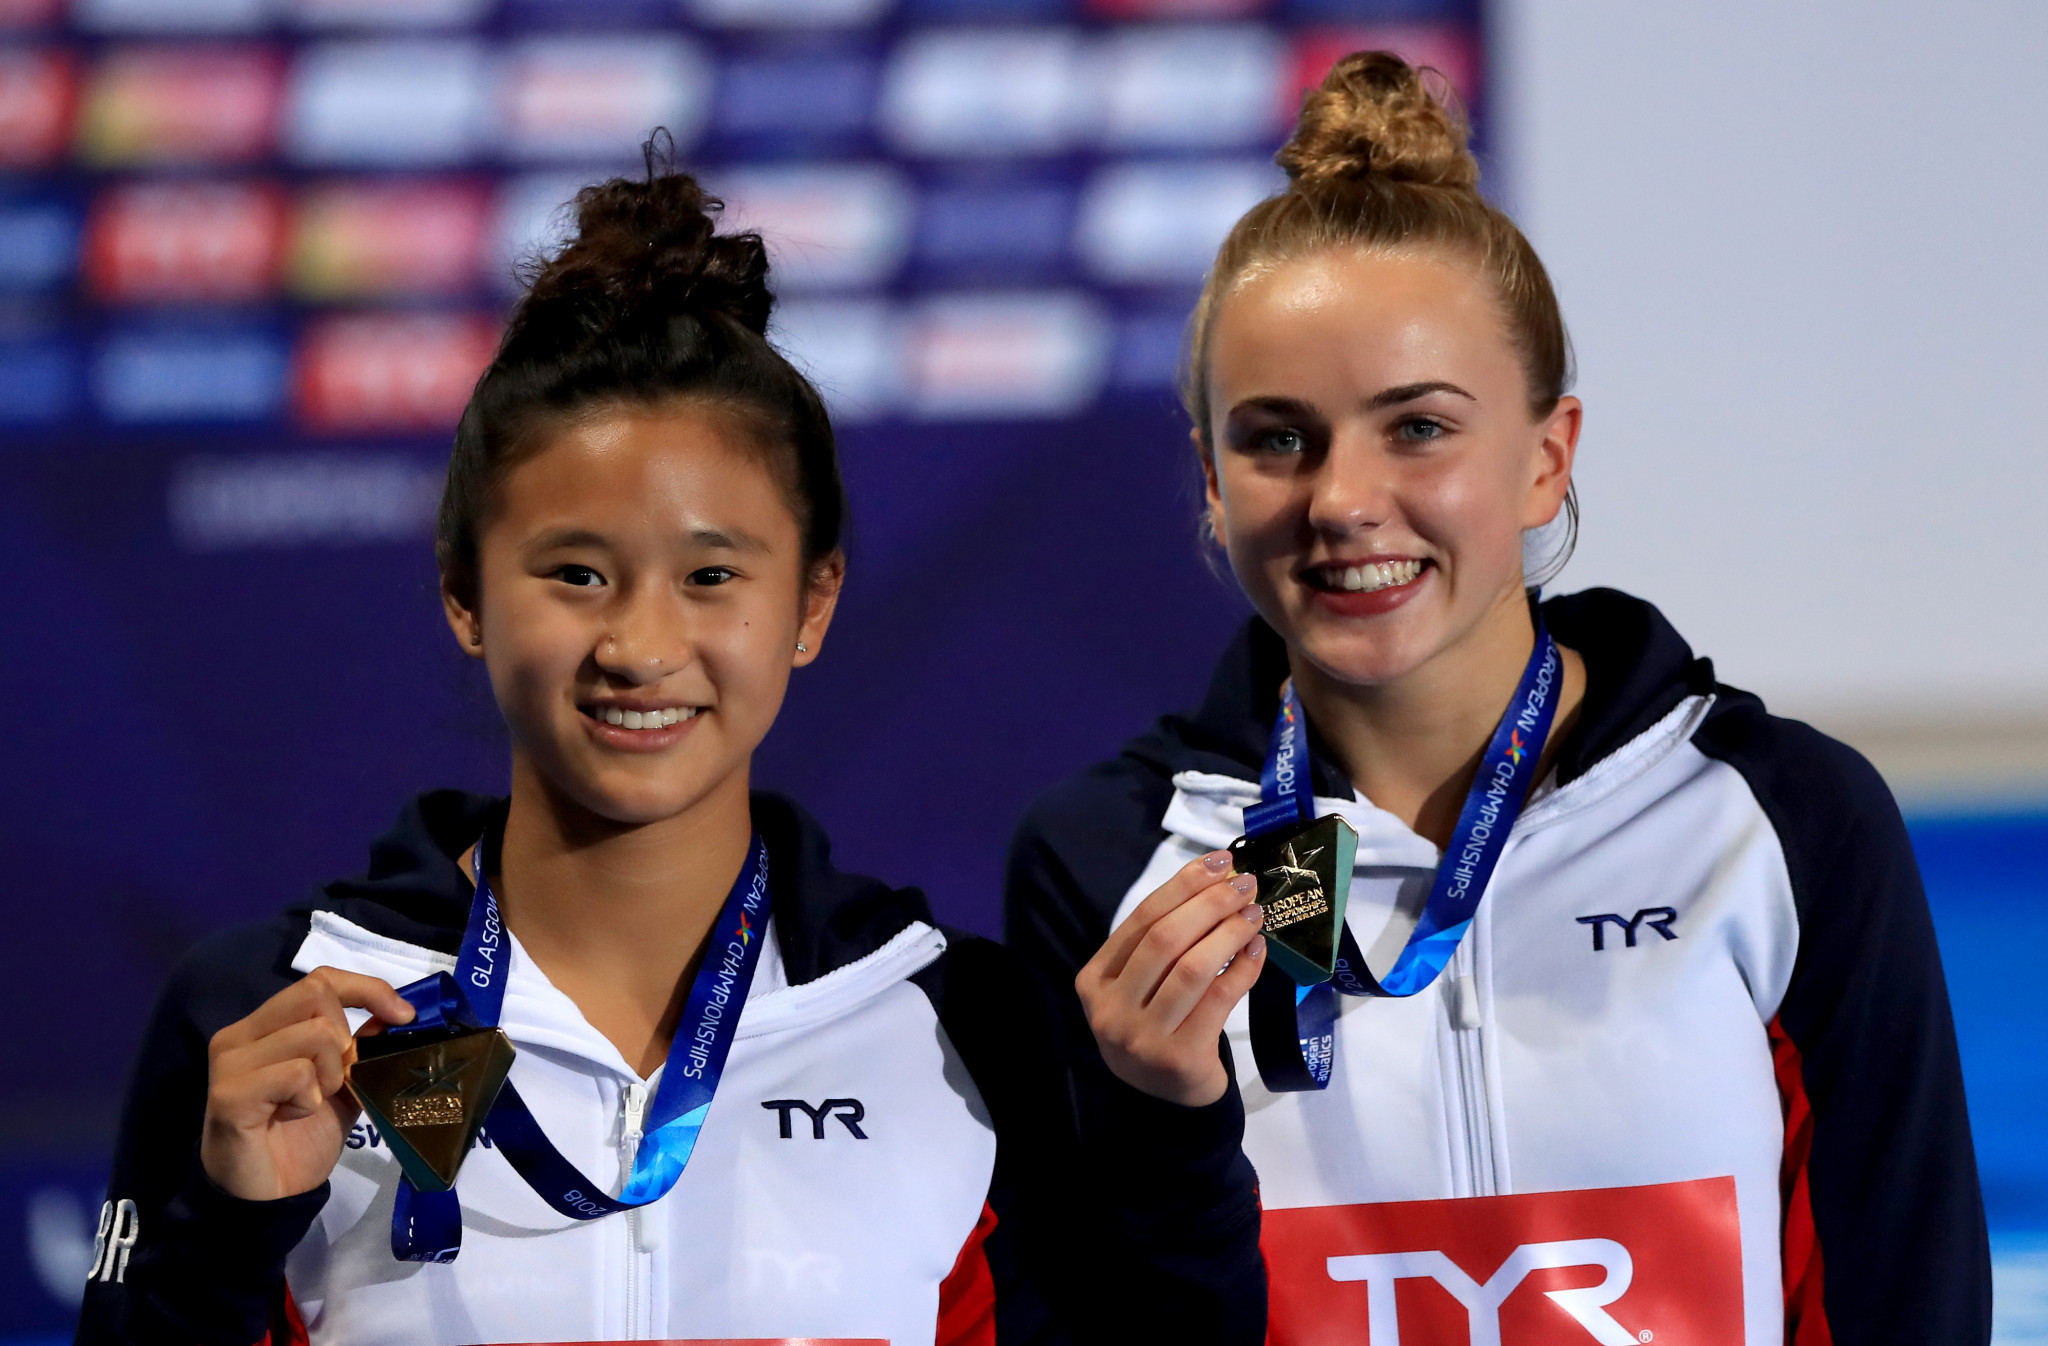 Great Britain won gold in both diving finals today, first the women's synchronised 10m platform final and then the men's 1m springboard final ©Getty Images